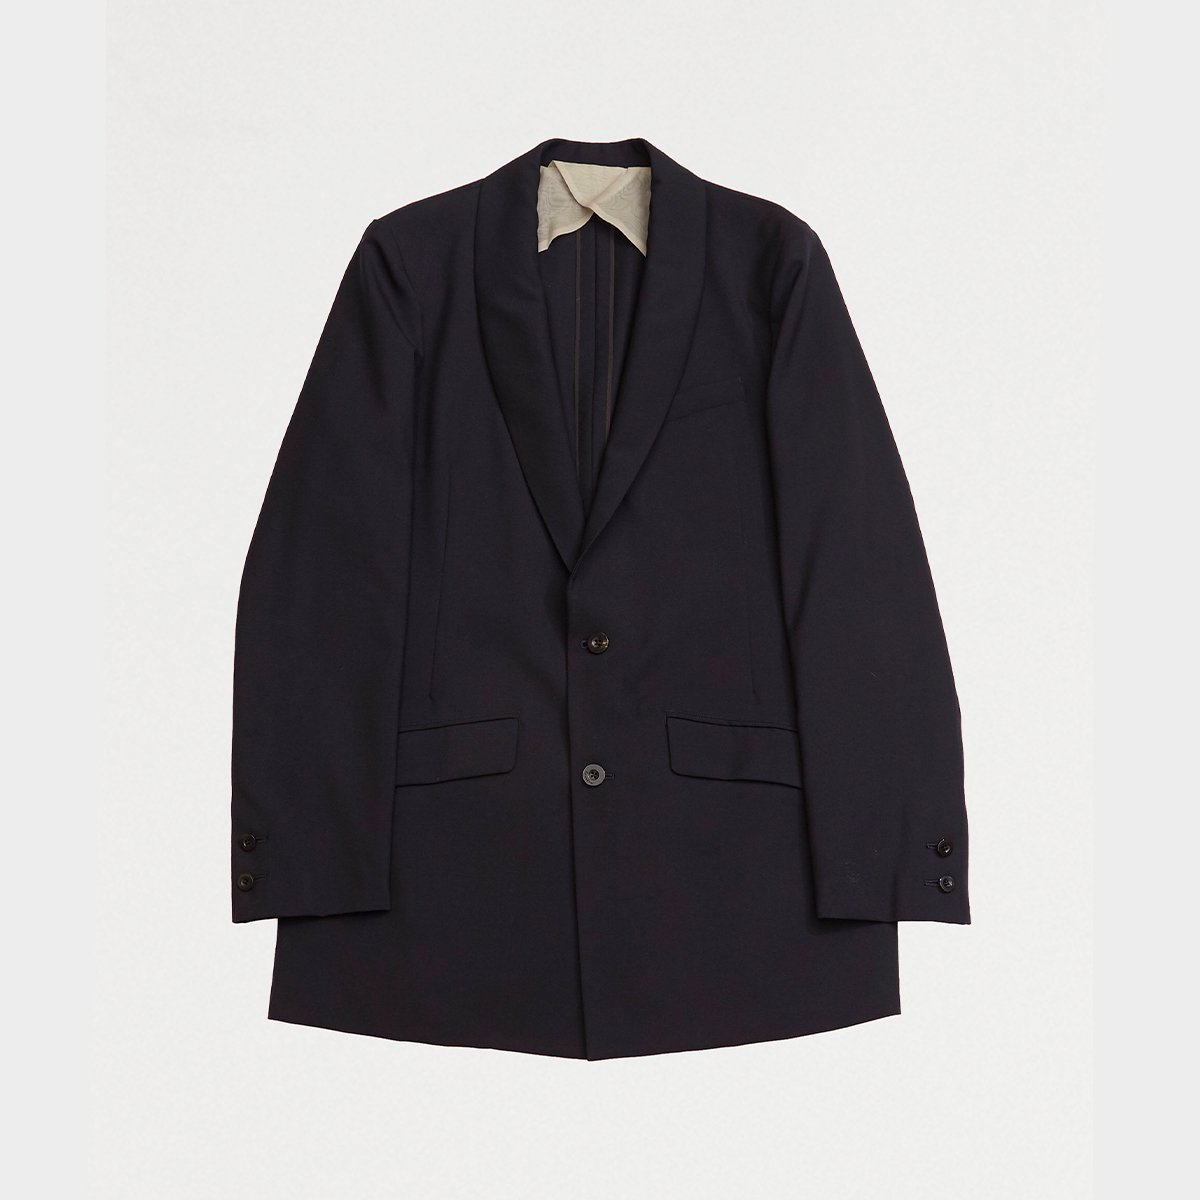 <img class='new_mark_img1' src='https://img.shop-pro.jp/img/new/icons5.gif' style='border:none;display:inline;margin:0px;padding:0px;width:auto;' />SHAWL COLLAR JACKET / NAVY